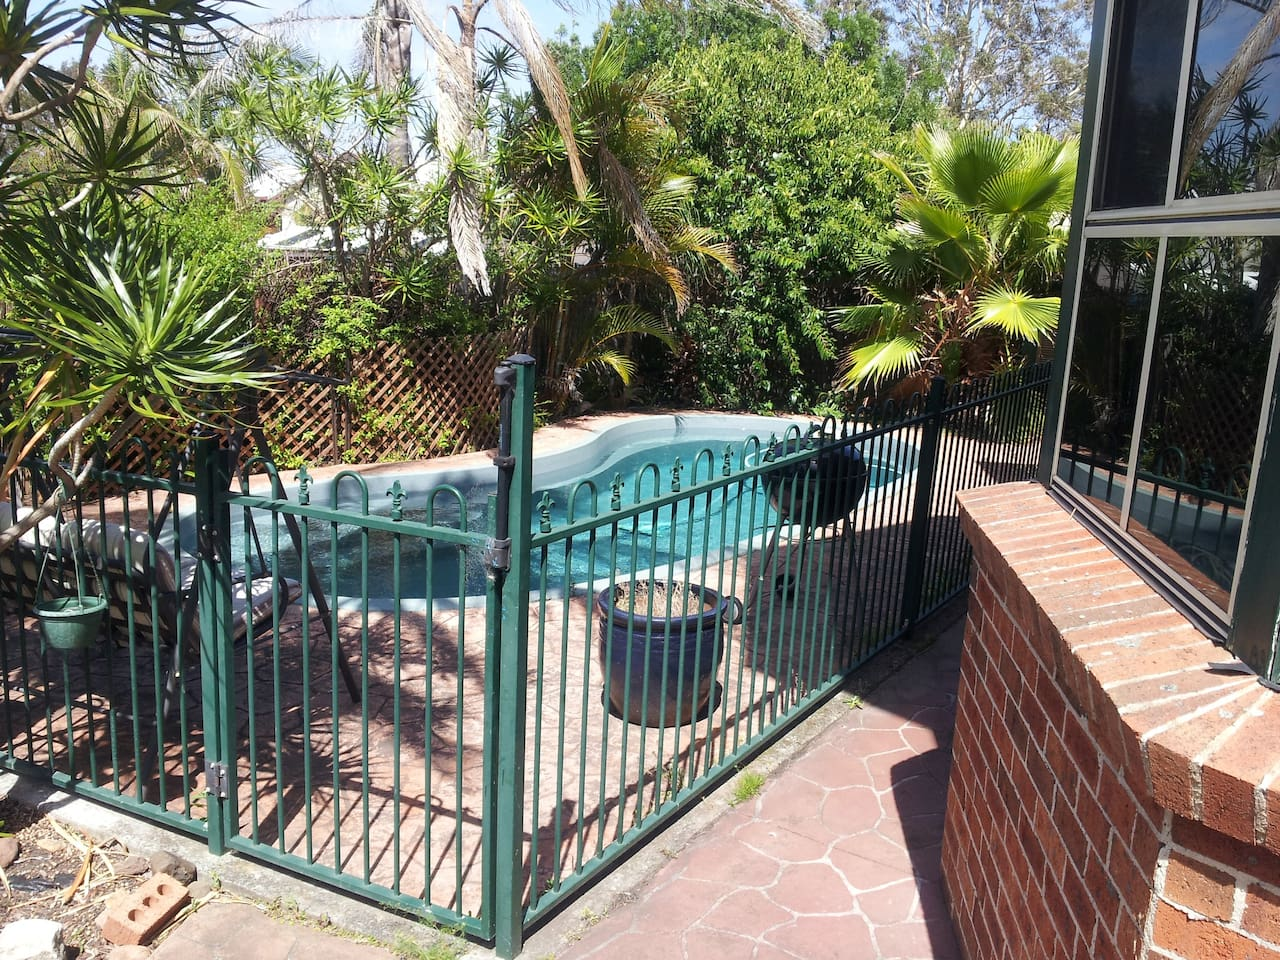 Gated pool area perfect for adult relaxation or kids pool play